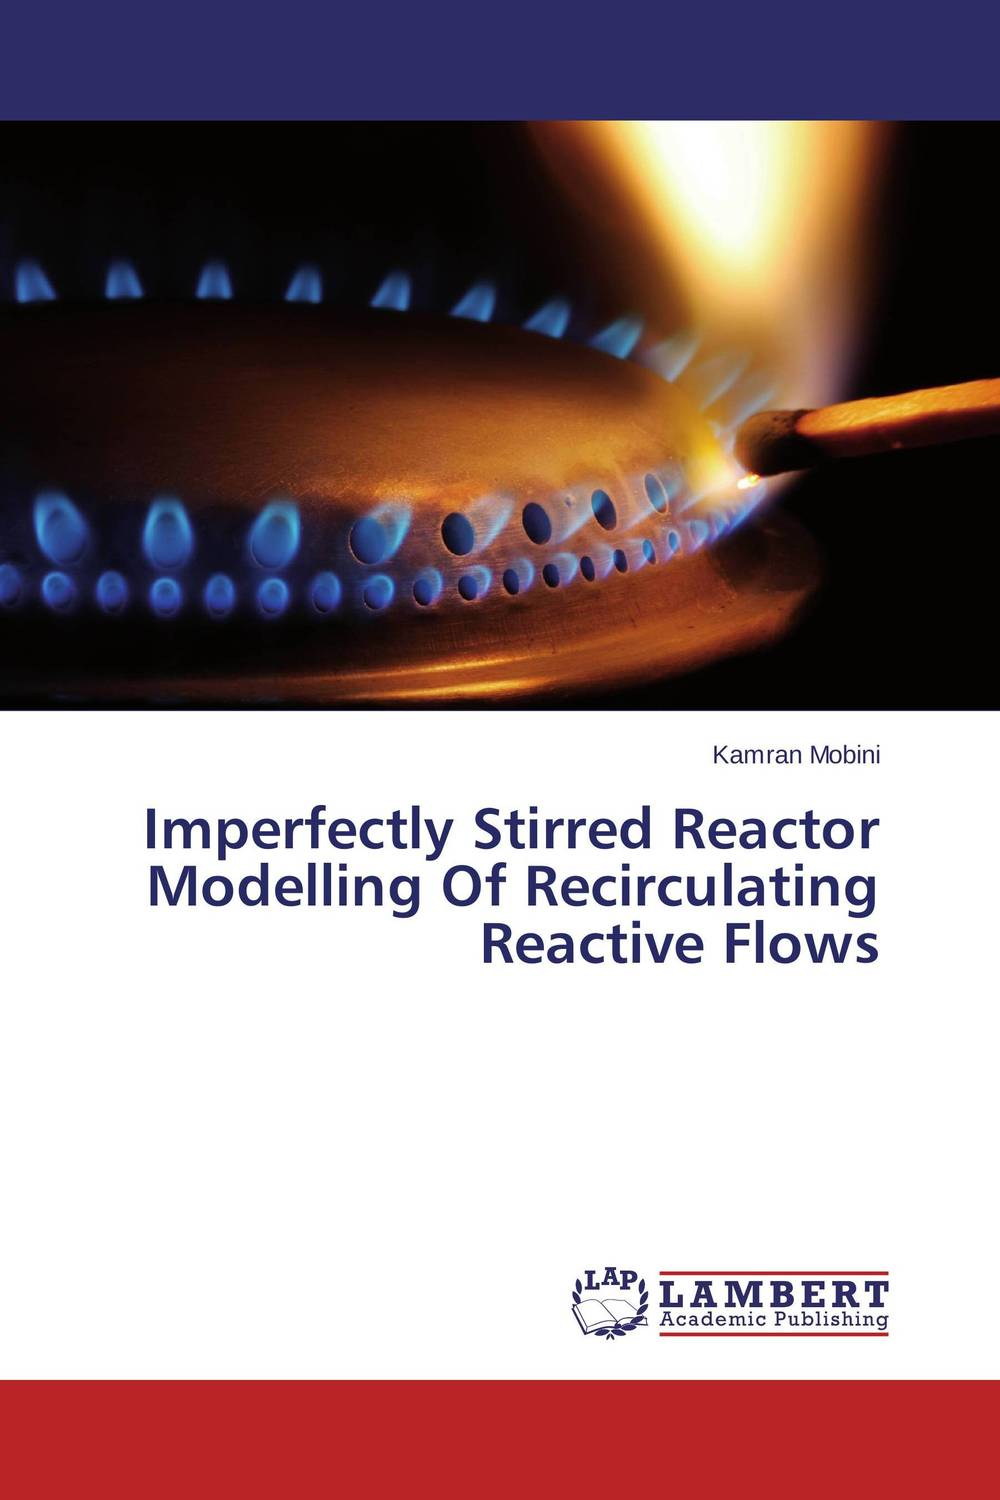 Imperfectly Stirred Reactor Modelling Of Recirculating Reactive Flows fuzzy logic control of continuous stirred tank reactor cstr page 9